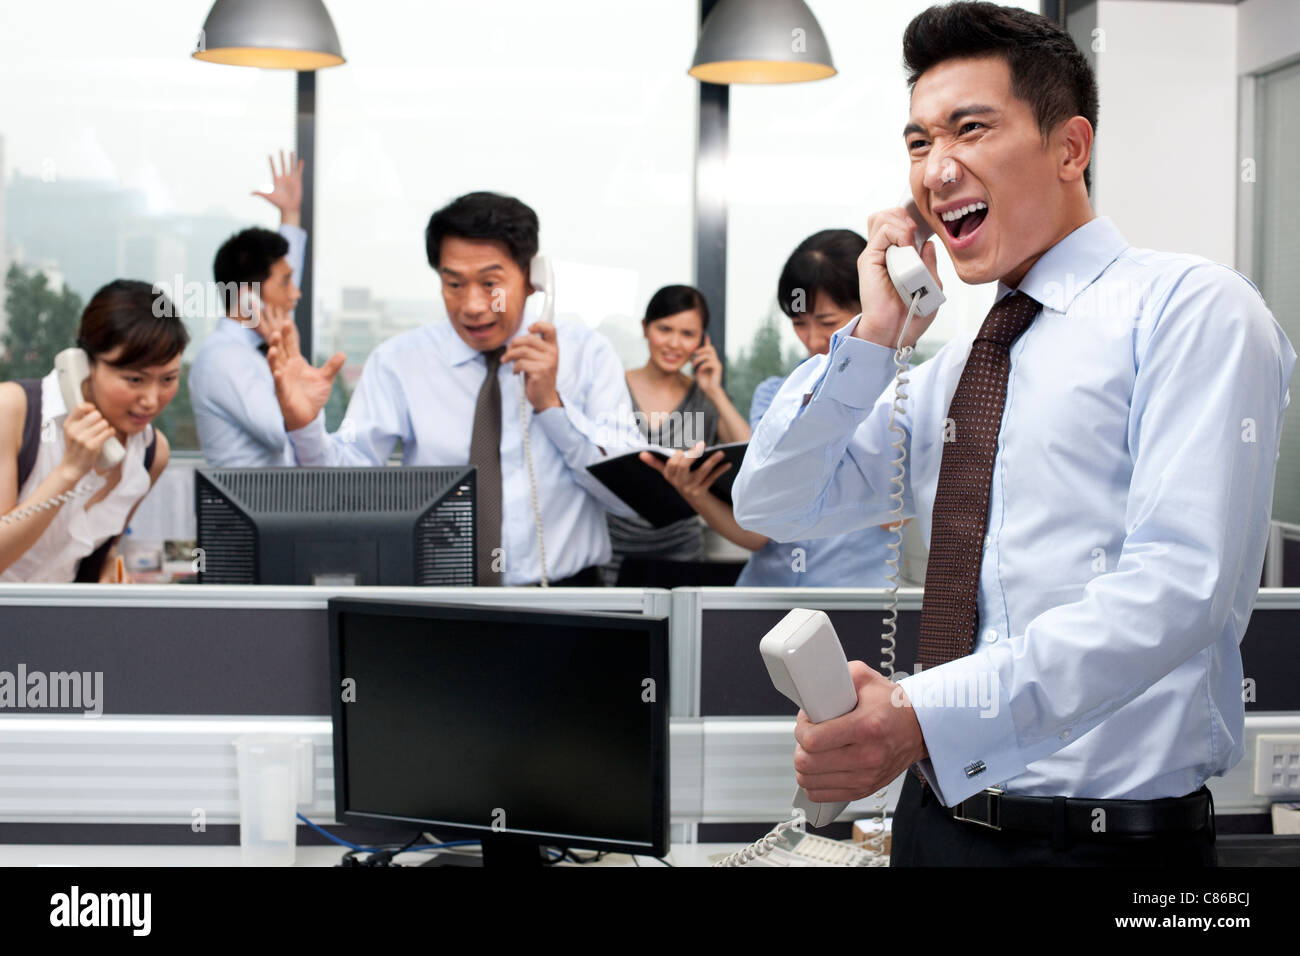 Office Shouting While on Telephone - Stock Image